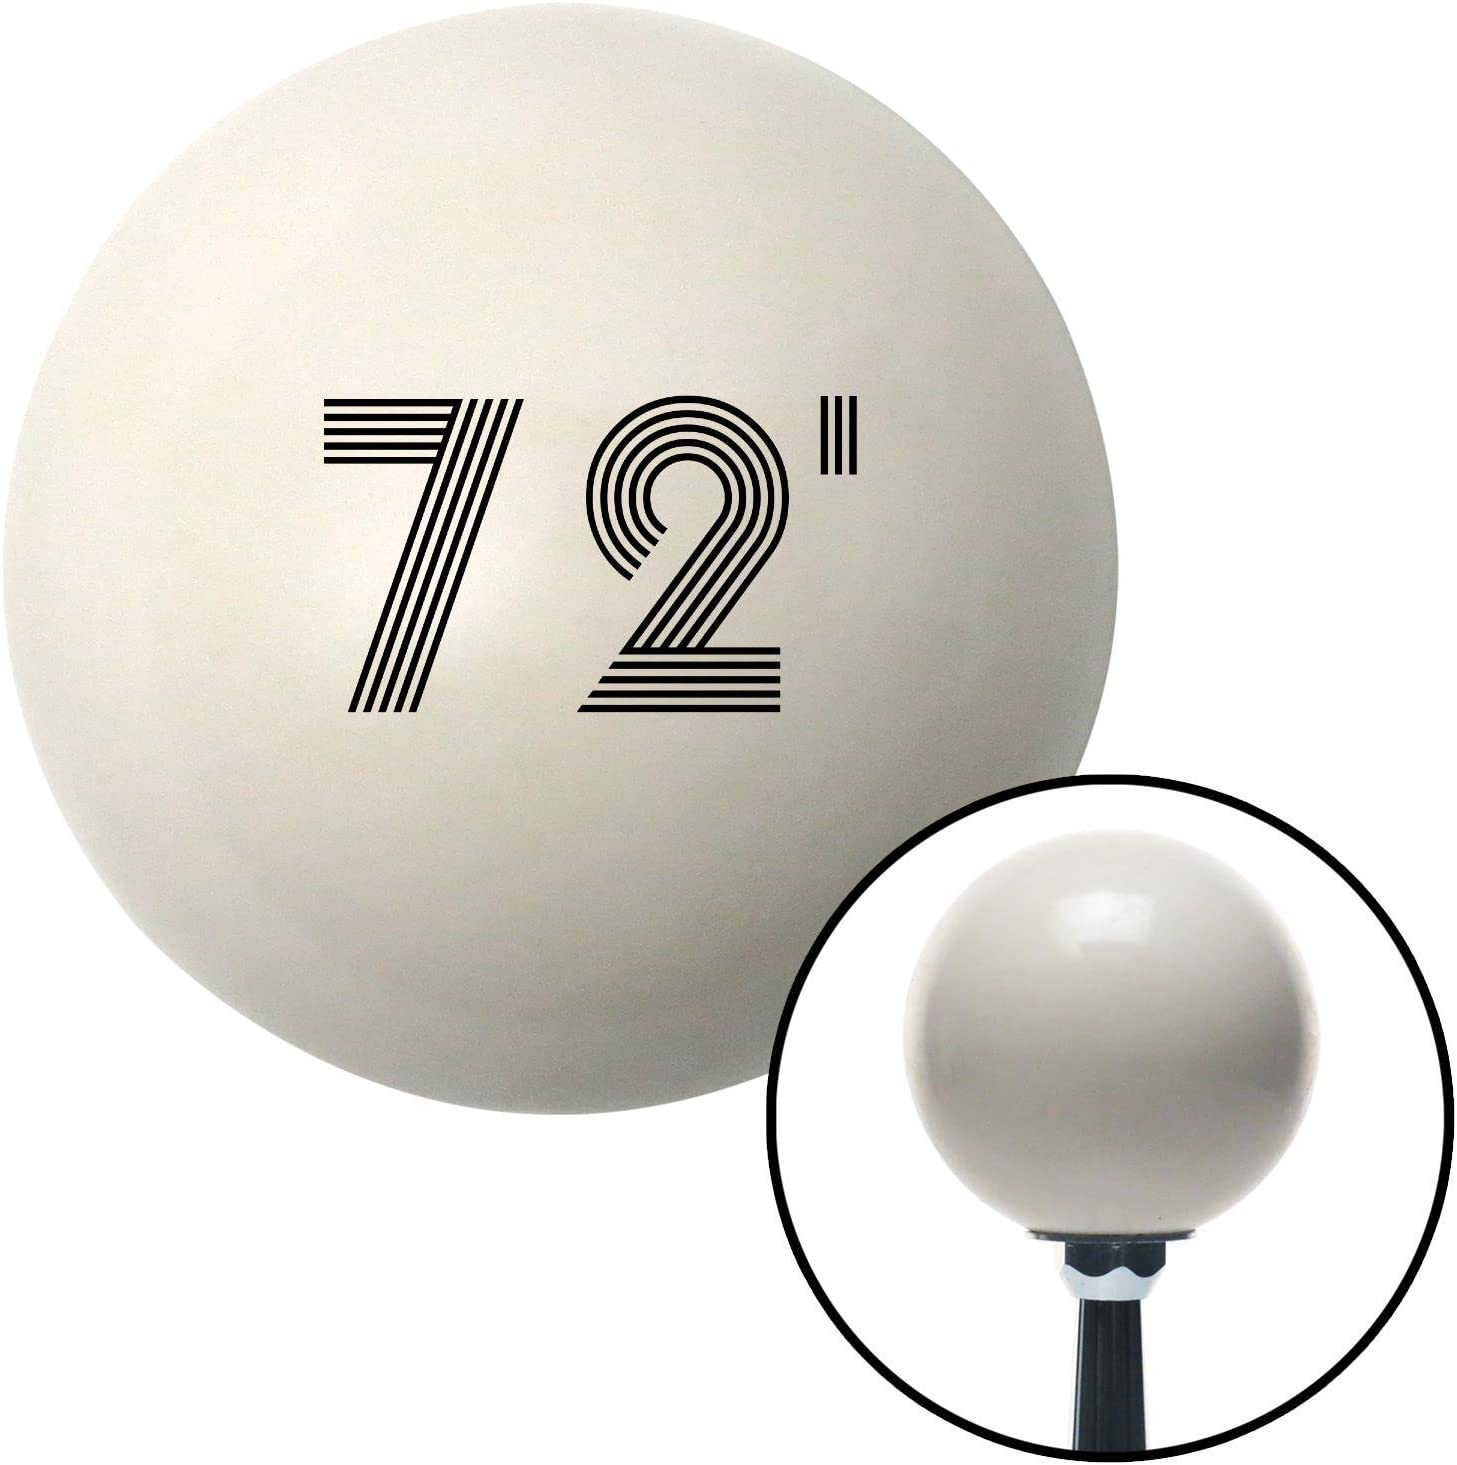 American Shifter 142648 Ivory Shift Knob with M16 x 1.5 Insert Black 72 Year Retro Series